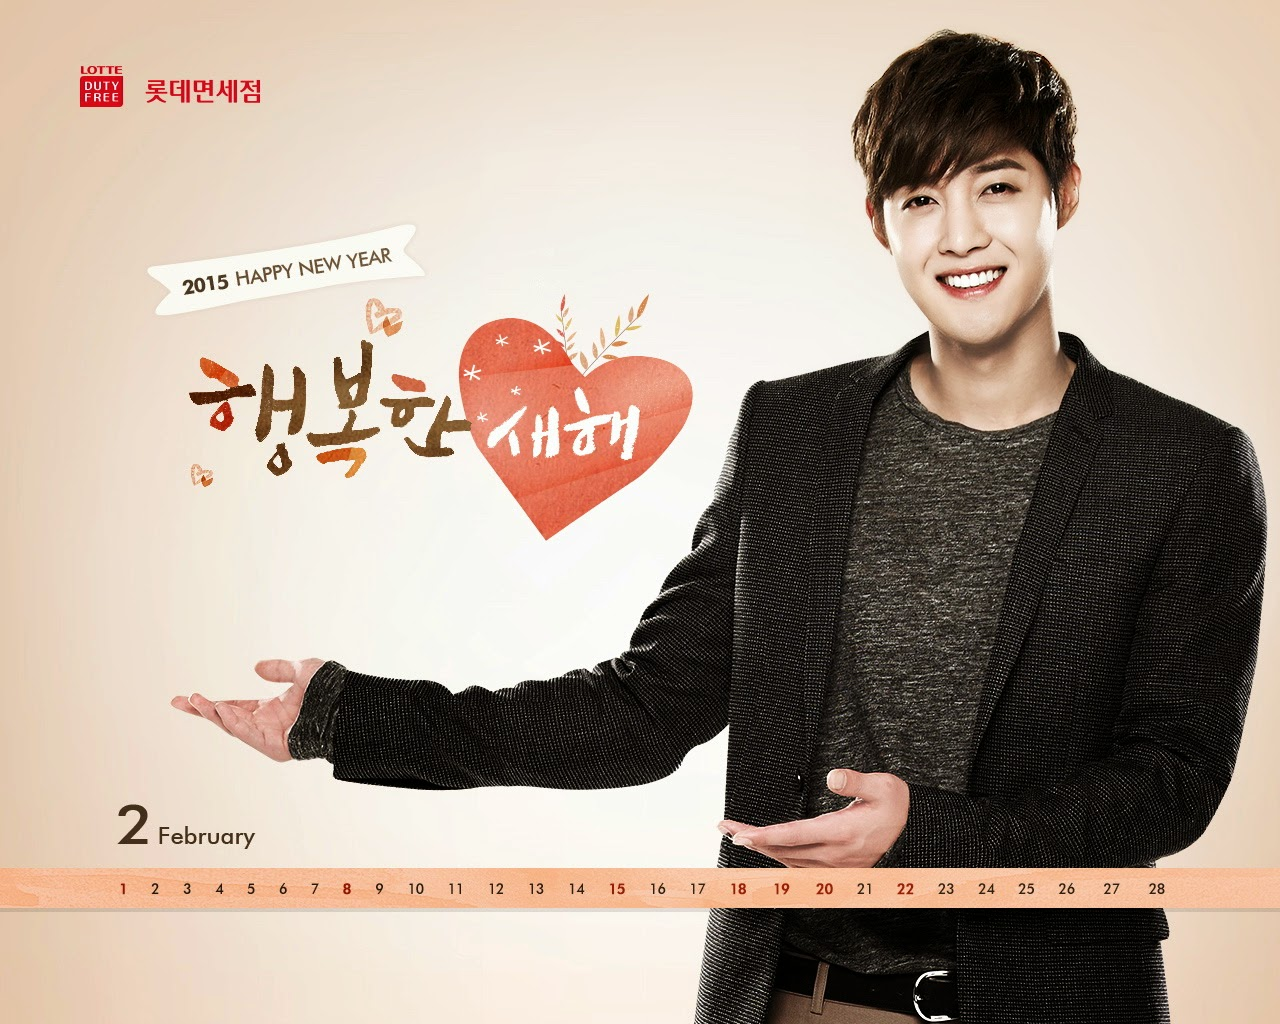 Photo_Kim Hyun Joong - Lotte Duty Free February 2015 Calendar Wallpaper